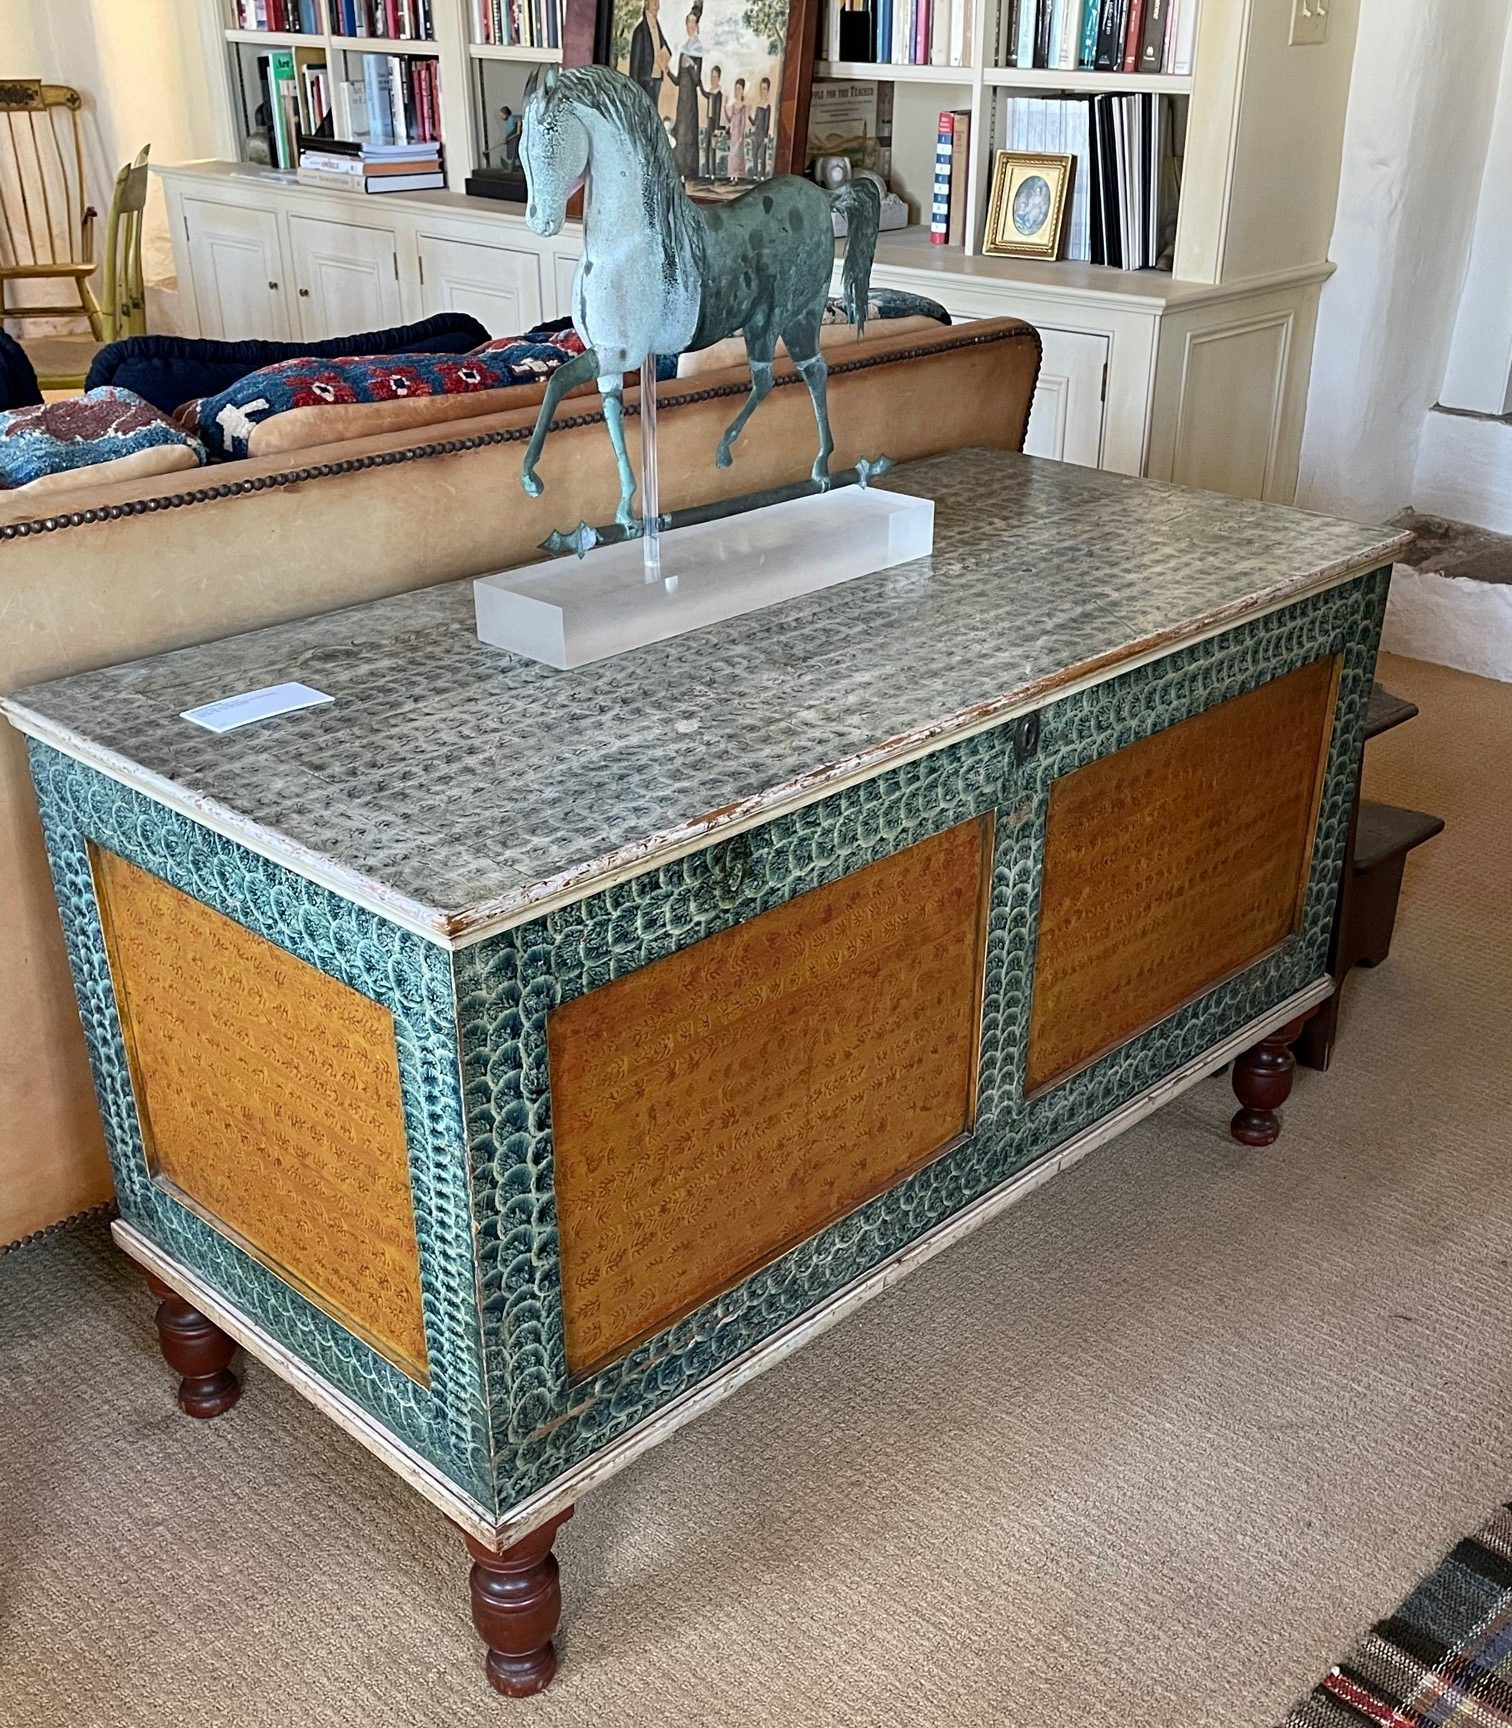 antique painted blanket chest rel=